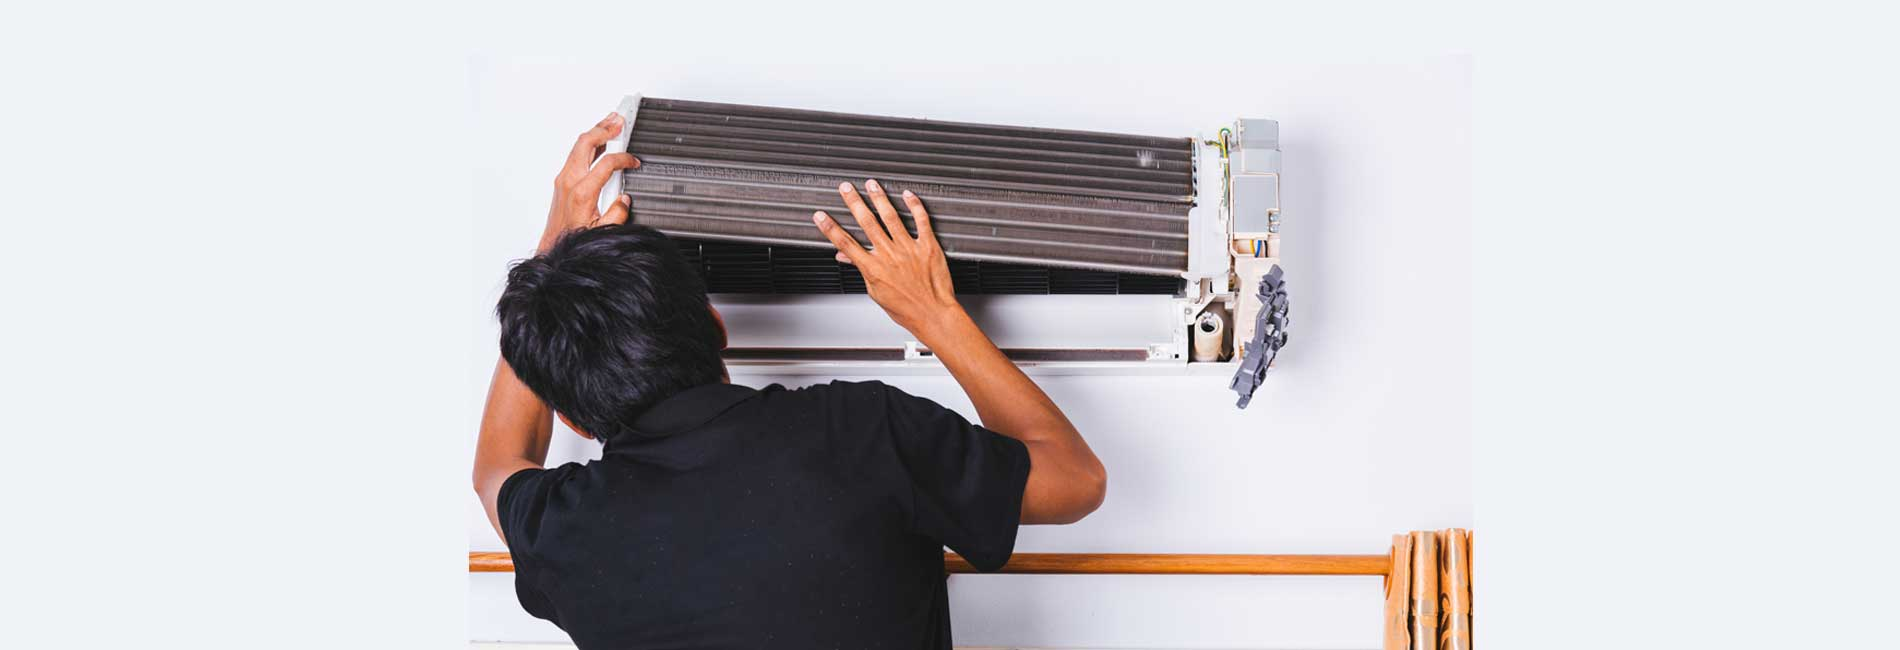 Split AC Uninstallation in Nandanam